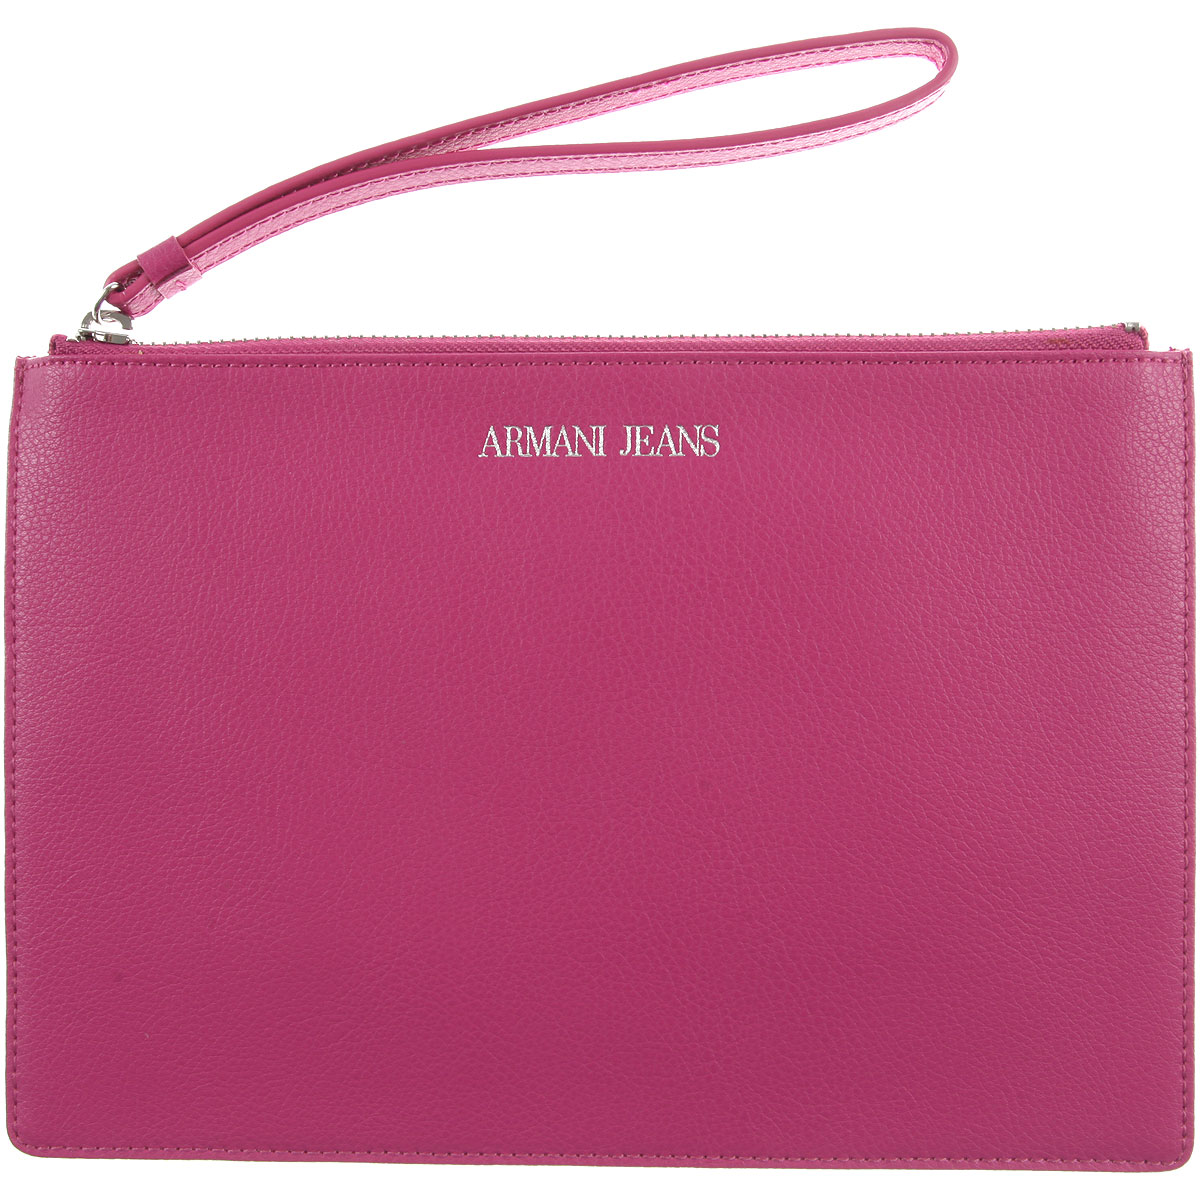 Image of Armani Jeans Clutch Bag On Sale in Outlet, Fuchsia, Eco Leather, 2017